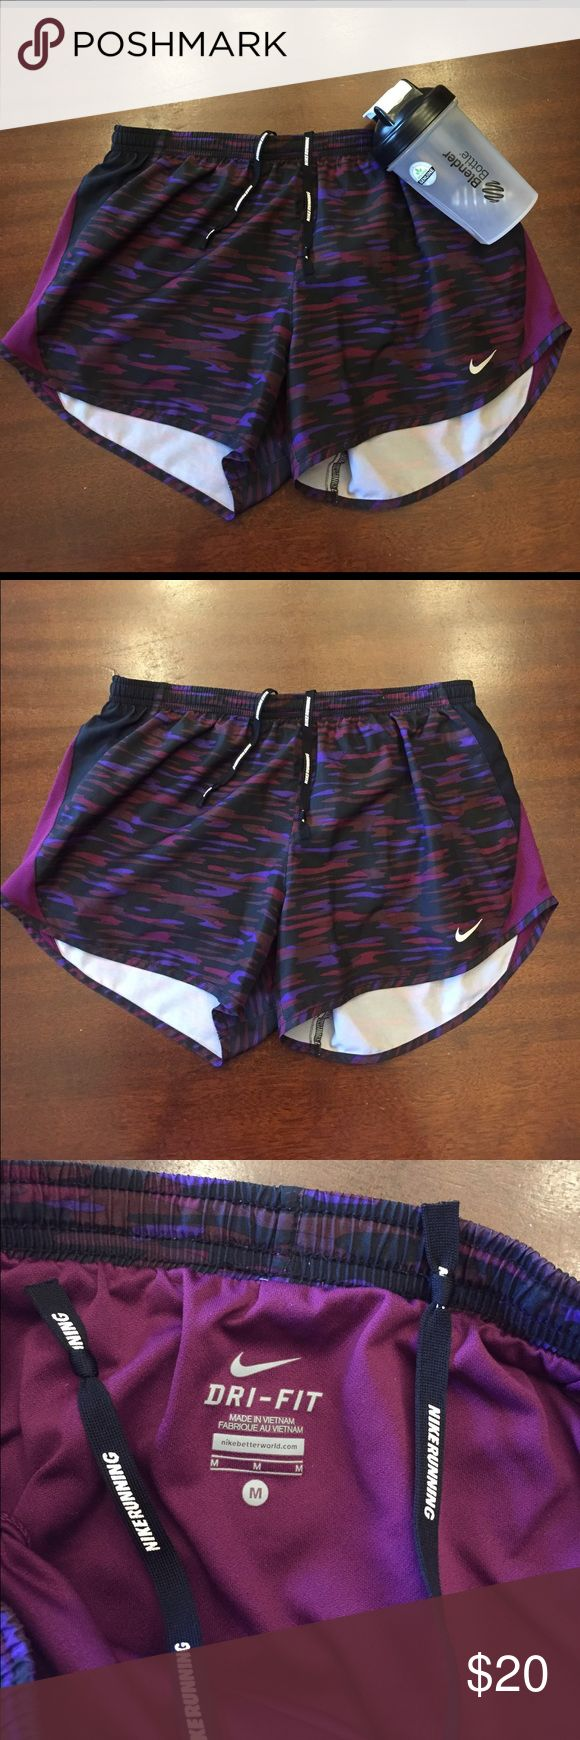 Nike dri-fit running shorts Absolutely perfect condition. Like brand new! These have a liner and drawstring inside. Does not come with blender bottle but if you're interested feel free to ask! No problems at all. Feel free to ask questions! Bundle to save!❤️ GET THEM BEFORE THEY'RE GONE! Many people have these shorts in a bundle right now so hurry!✨✨✨✨✨✨ Nike Shorts